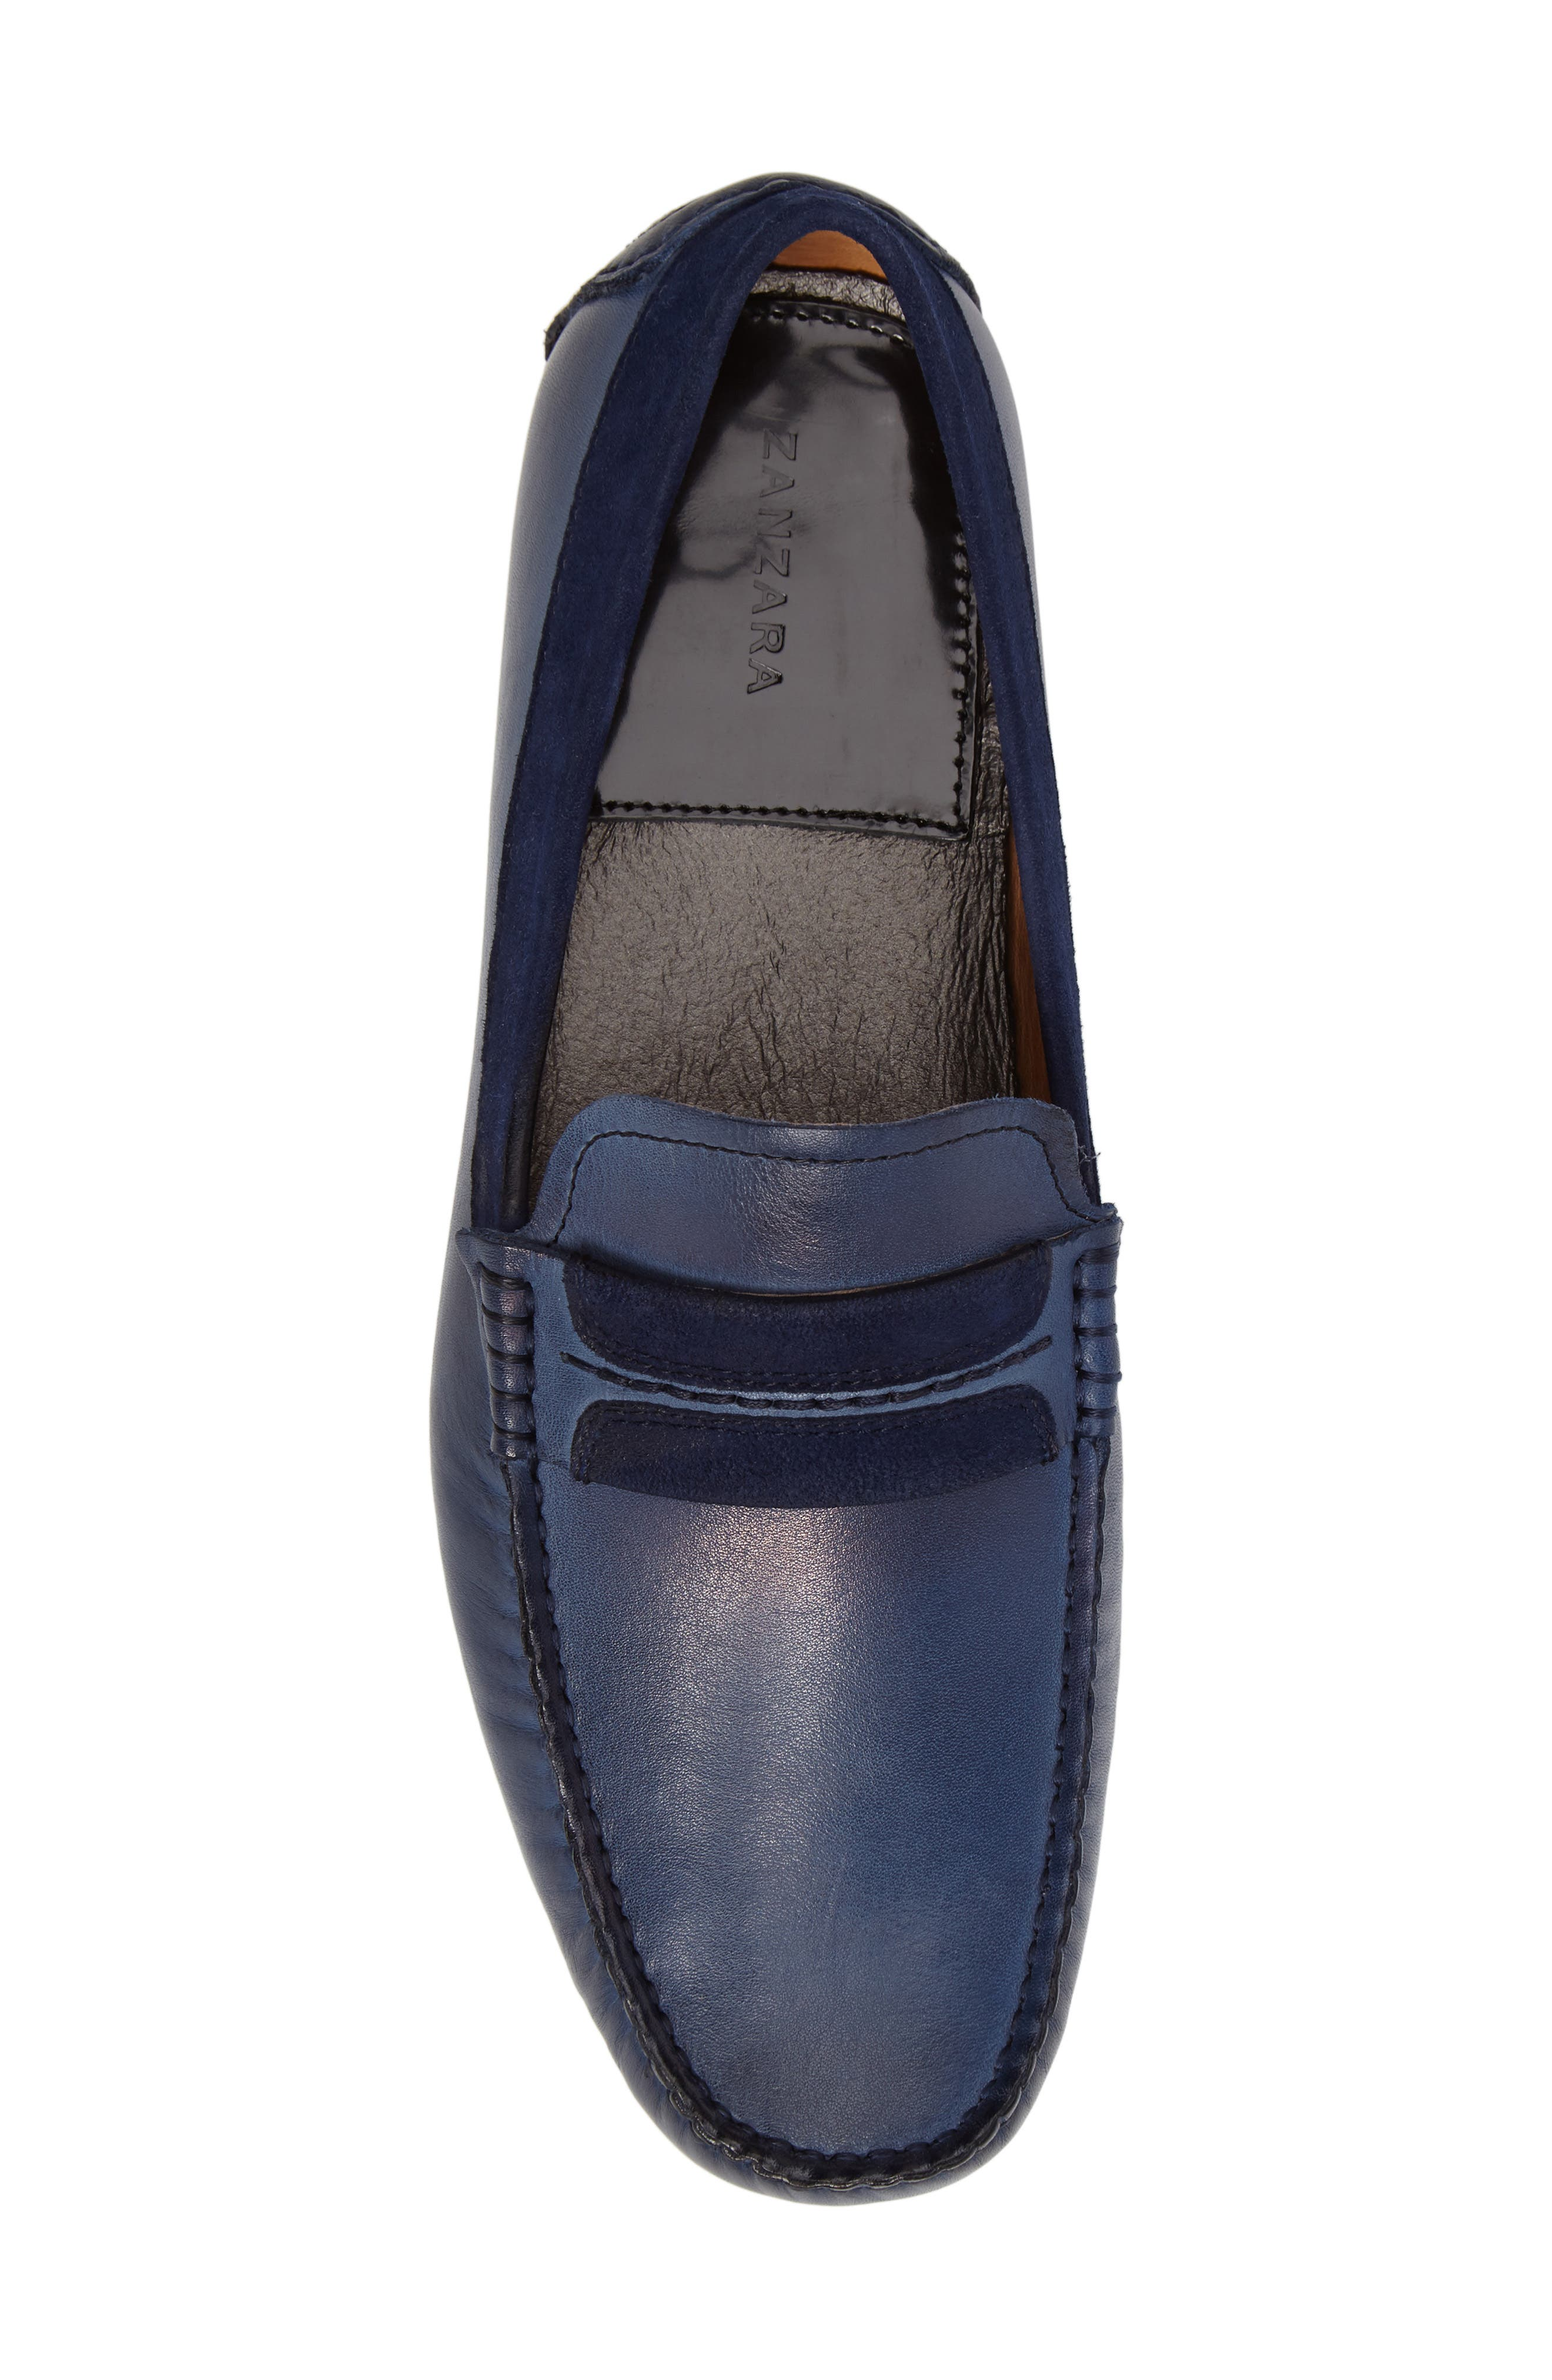 ZANZARA,                             Francesca Driving Shoe,                             Alternate thumbnail 5, color,                             BLUE LEATHER